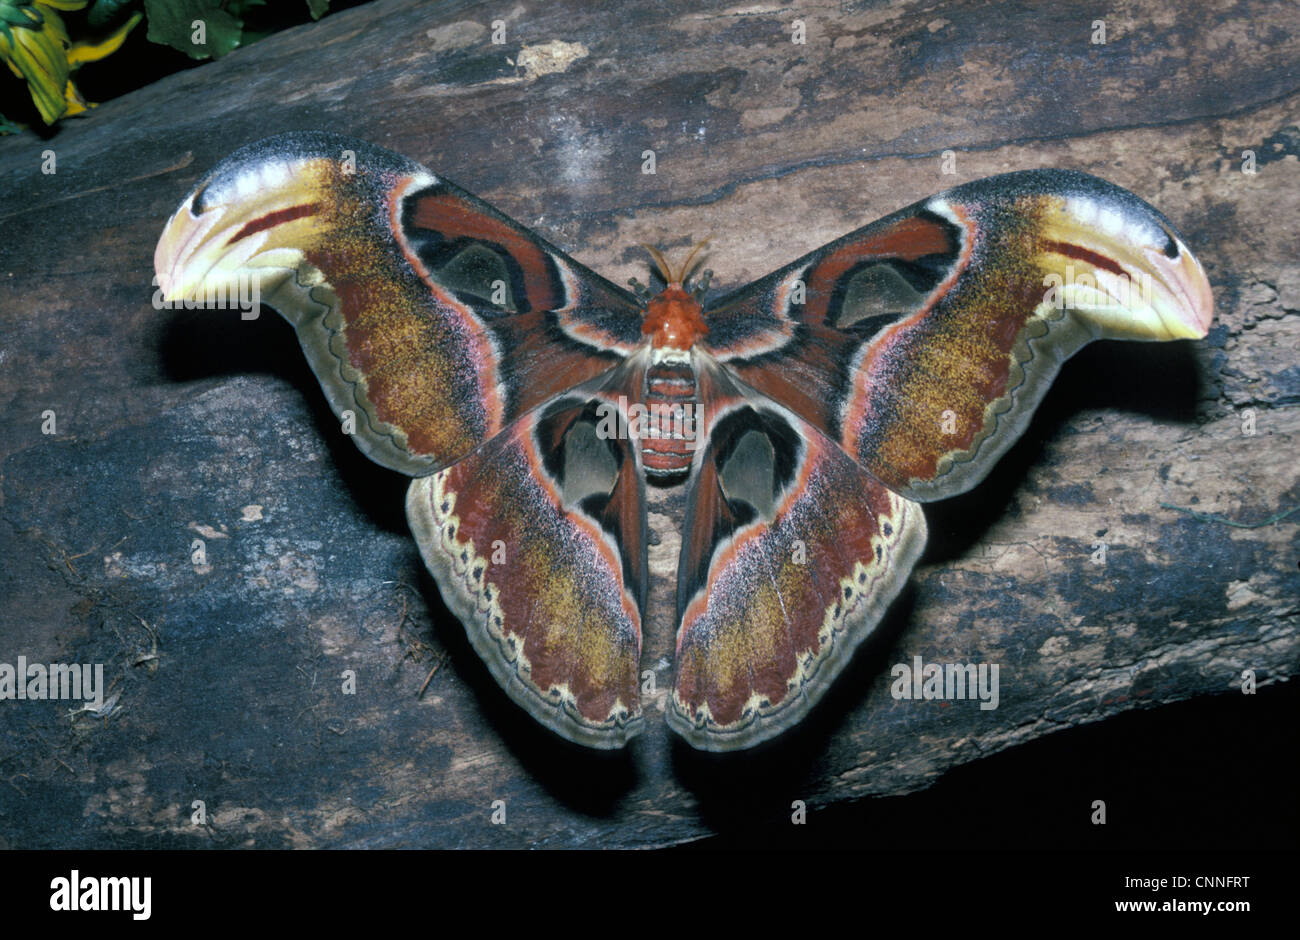 Moth - Atlas (Attacus atlas) close-up / on wood / one of the biggest moths in the world - Stock Image